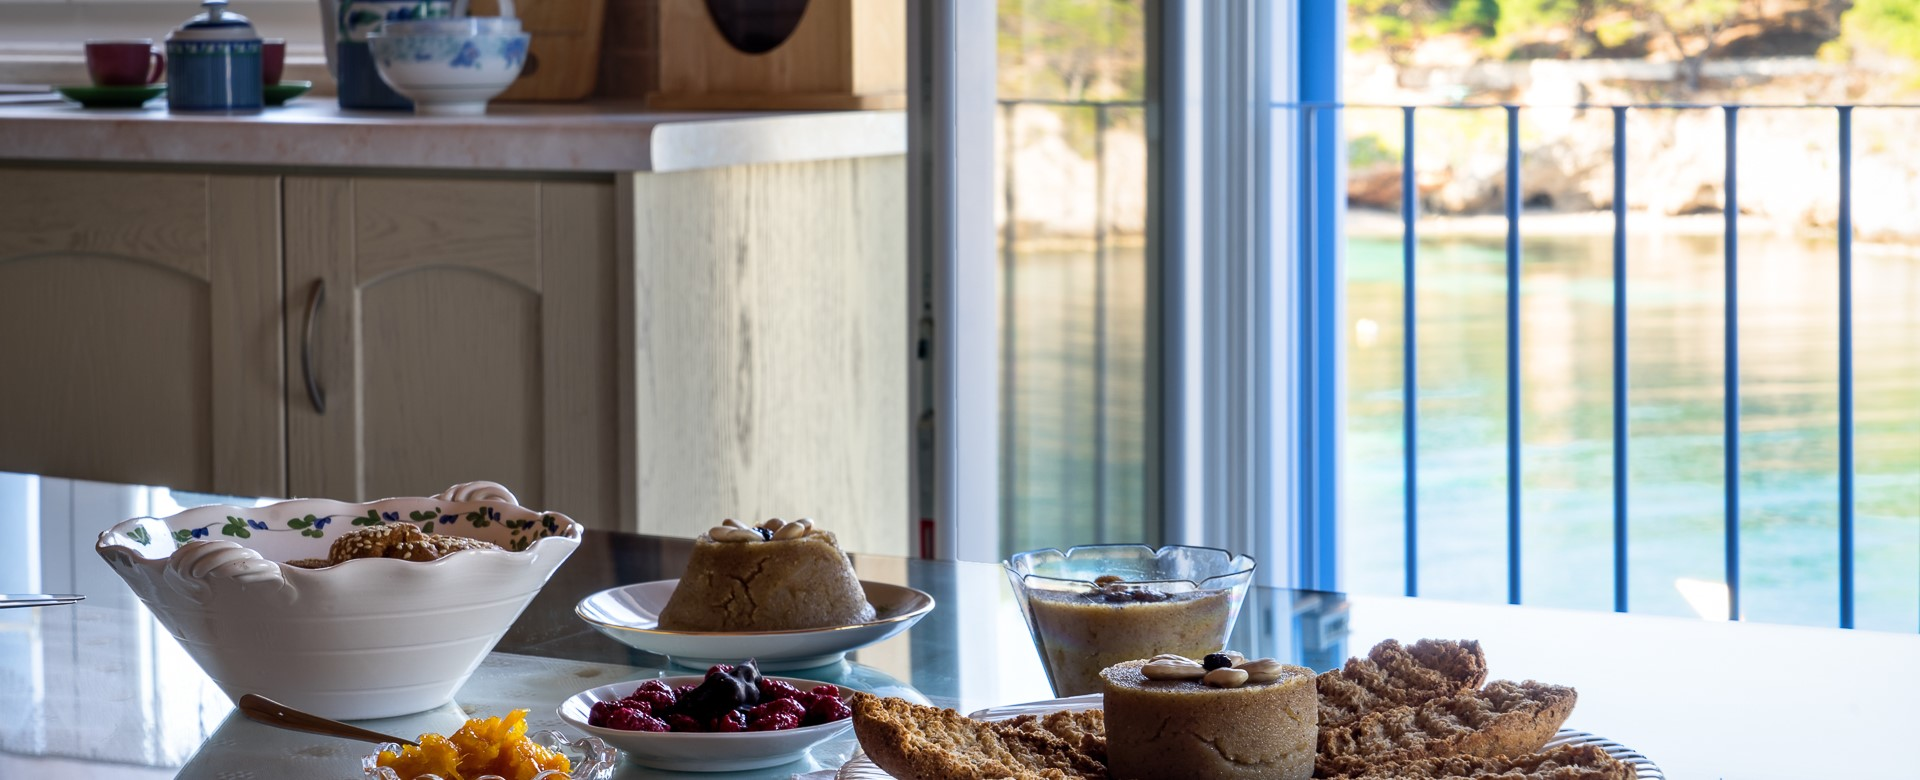 Breakfast indoors with waterfront view at Villa Petrino, Assos, Kefalonia, Greek Islands